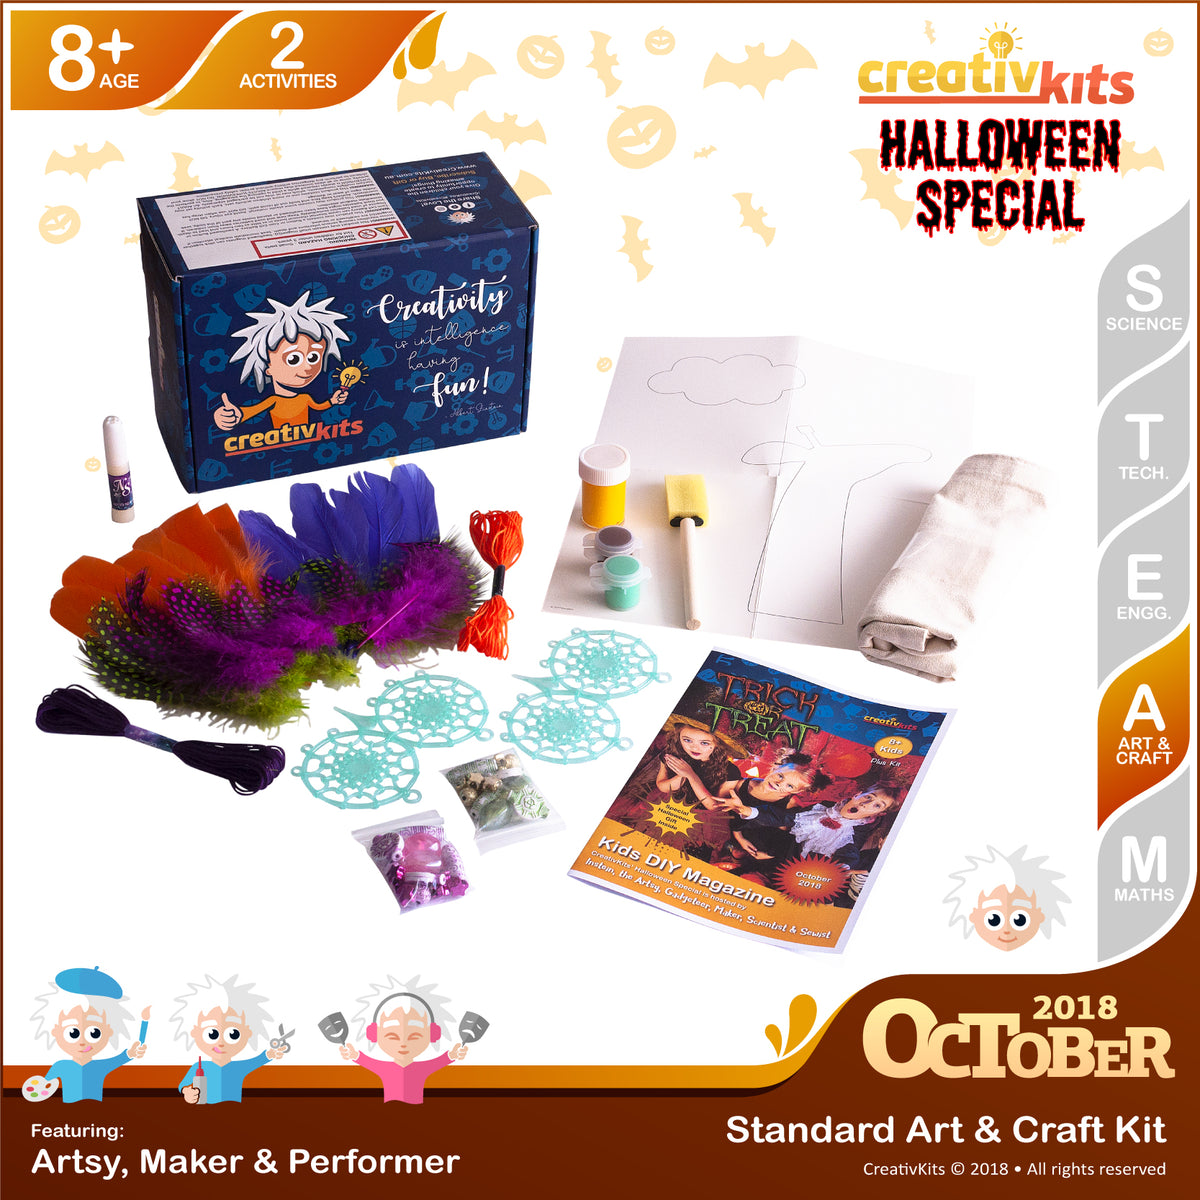 DIY Trick or Treat Bags and Making Dream Catchers | October Standard Art and Craft Kit | Age 8+